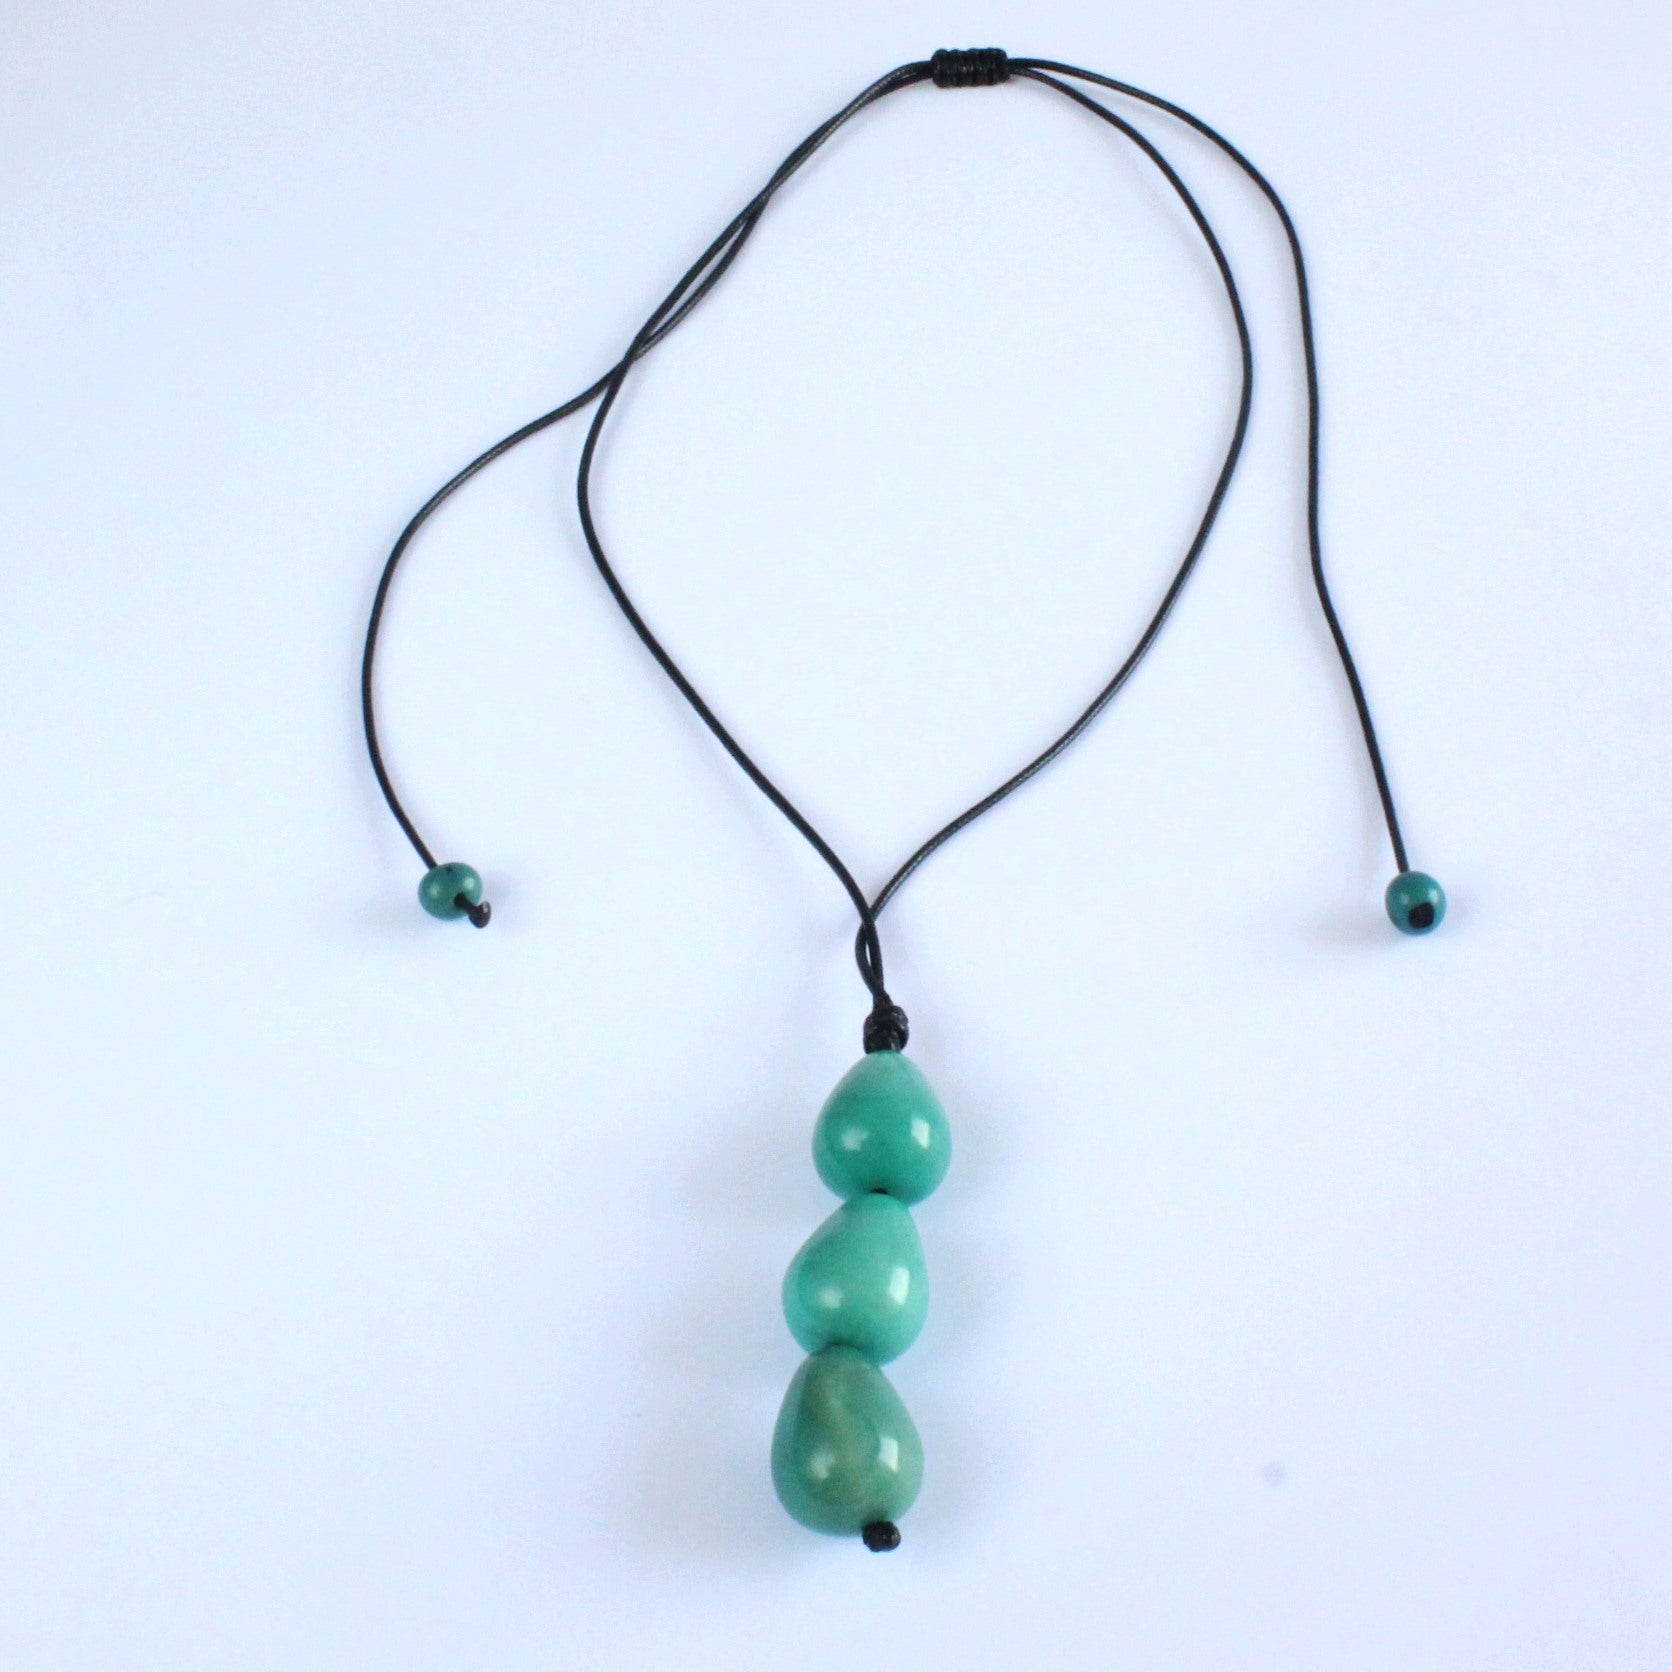 Necklace, handmade, sustainable tagua nut, turquoise